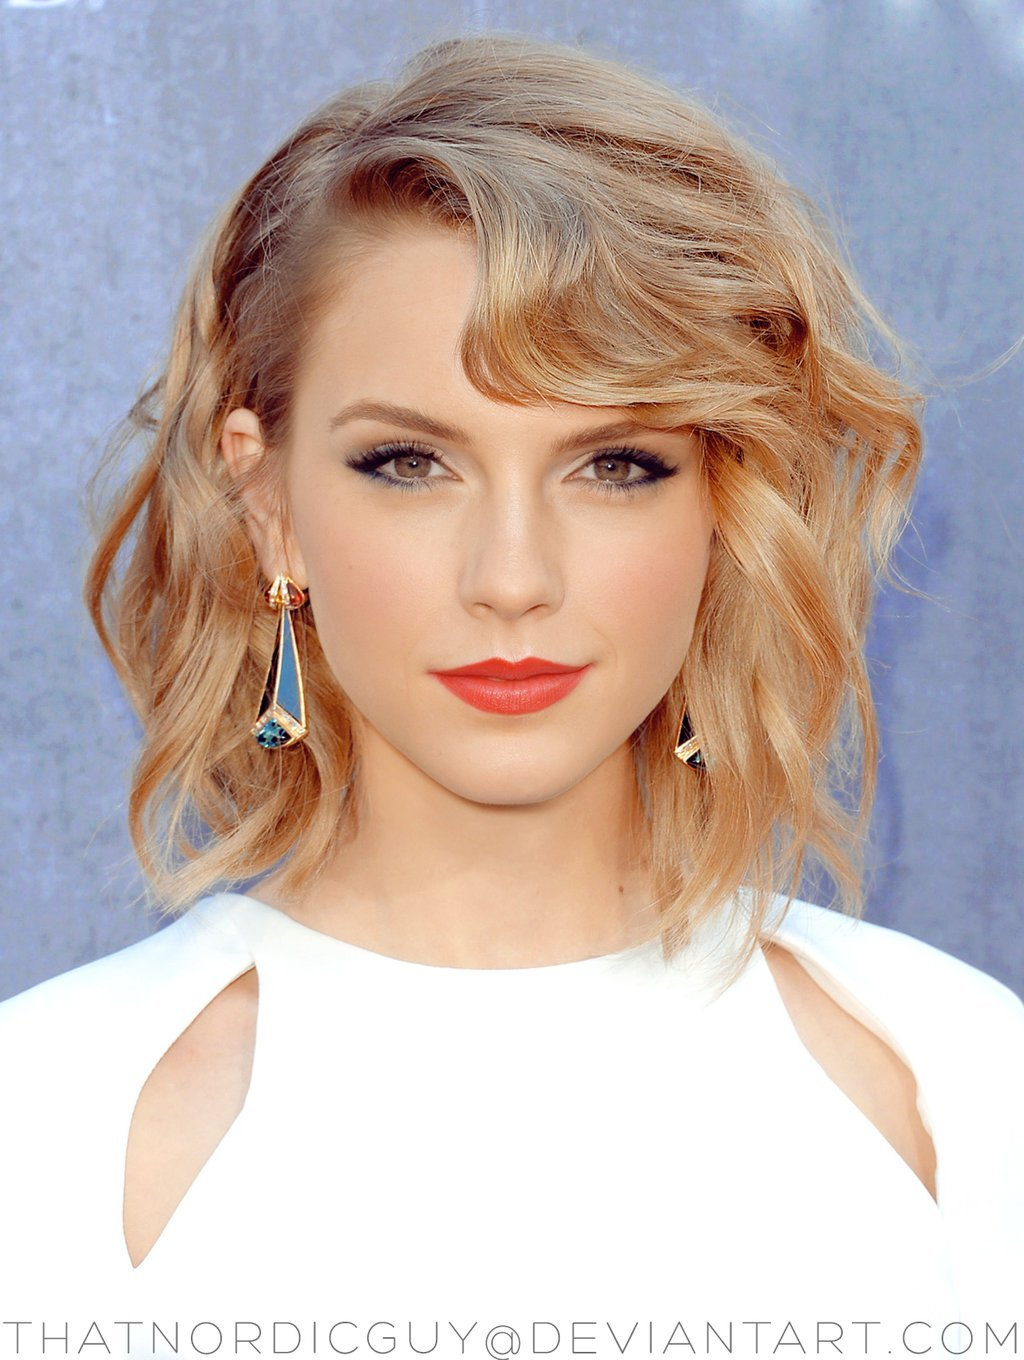 one-of-thatnordicguys-most-seamless-composites-was-of-superstars-taylor-swift-and-emma-watson